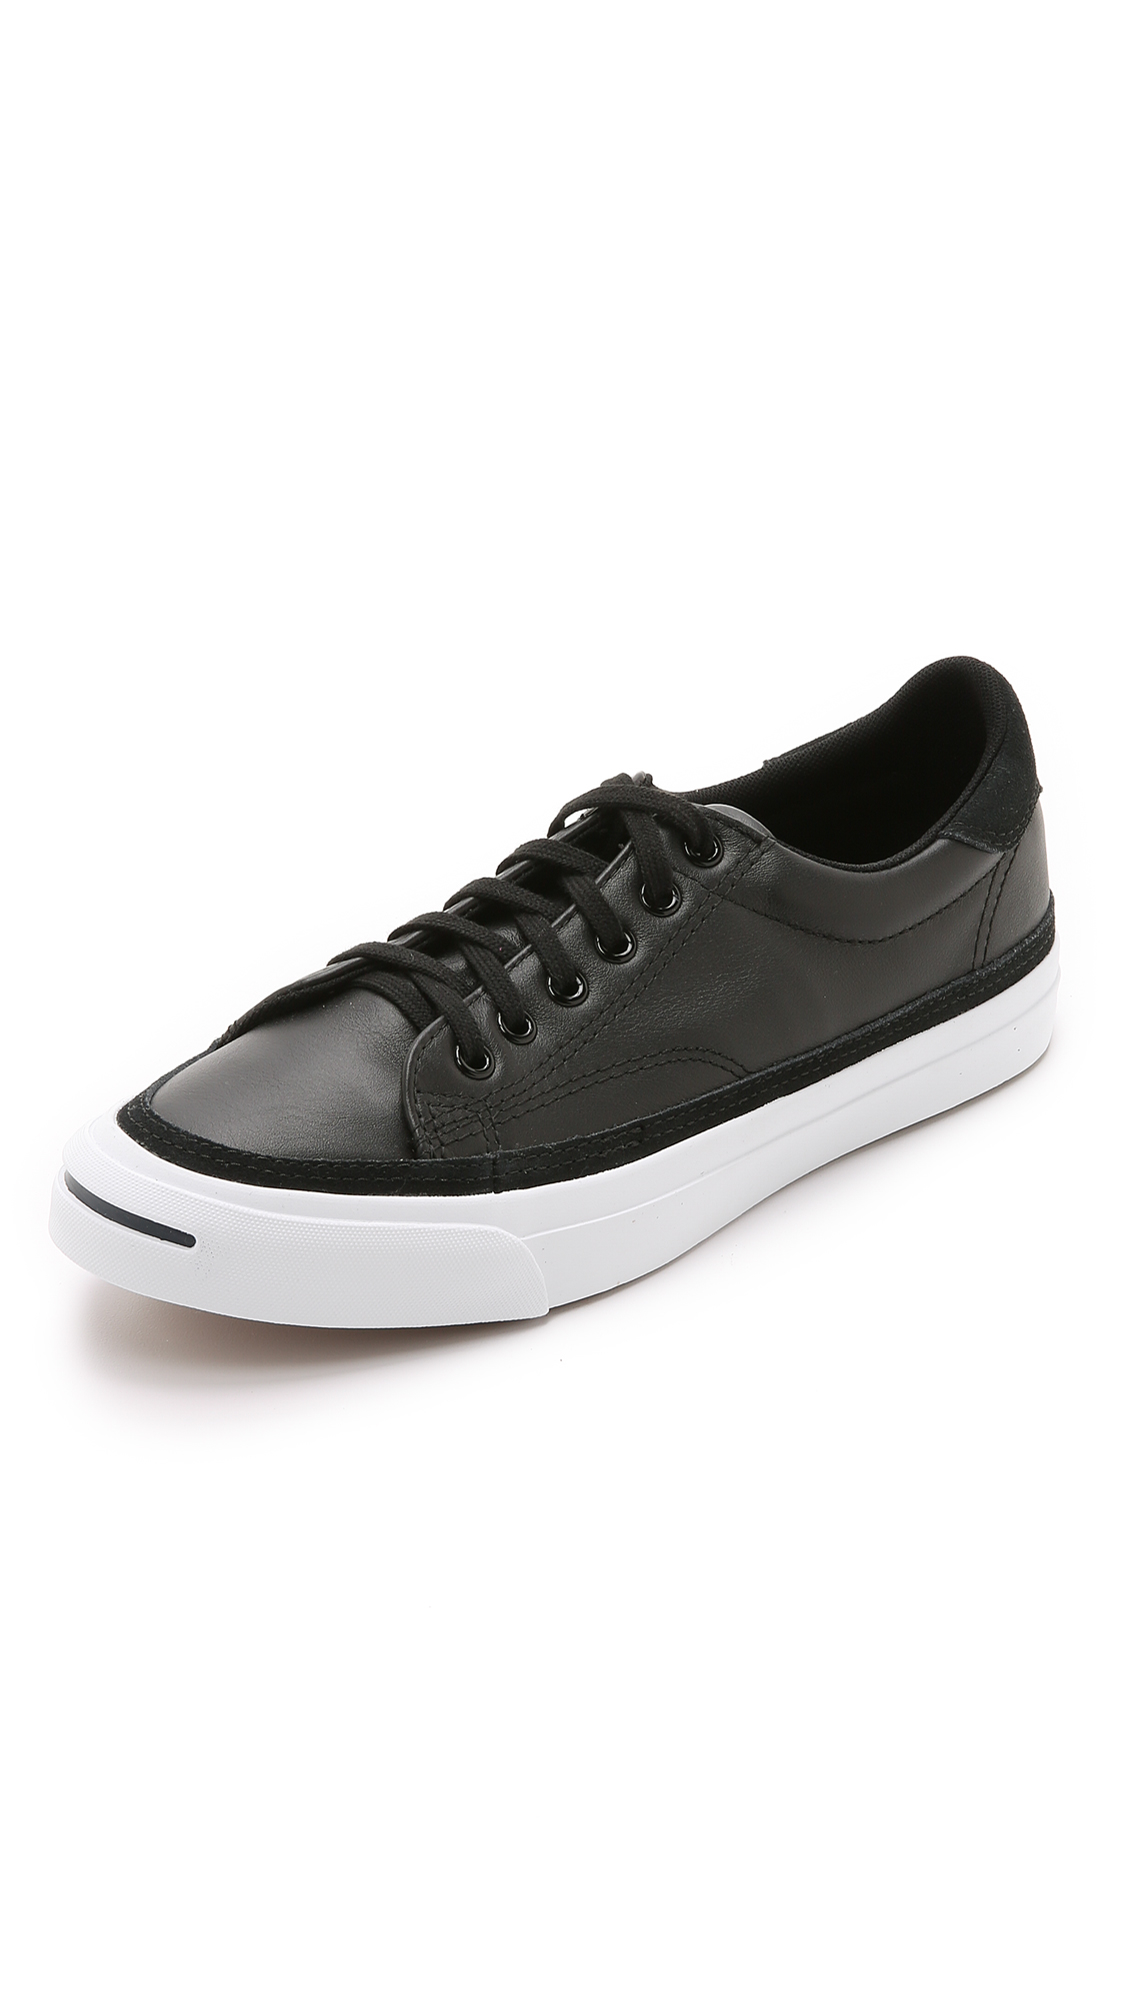 Converse Jack Purcell Ii Leather Sneakers In Black For Men